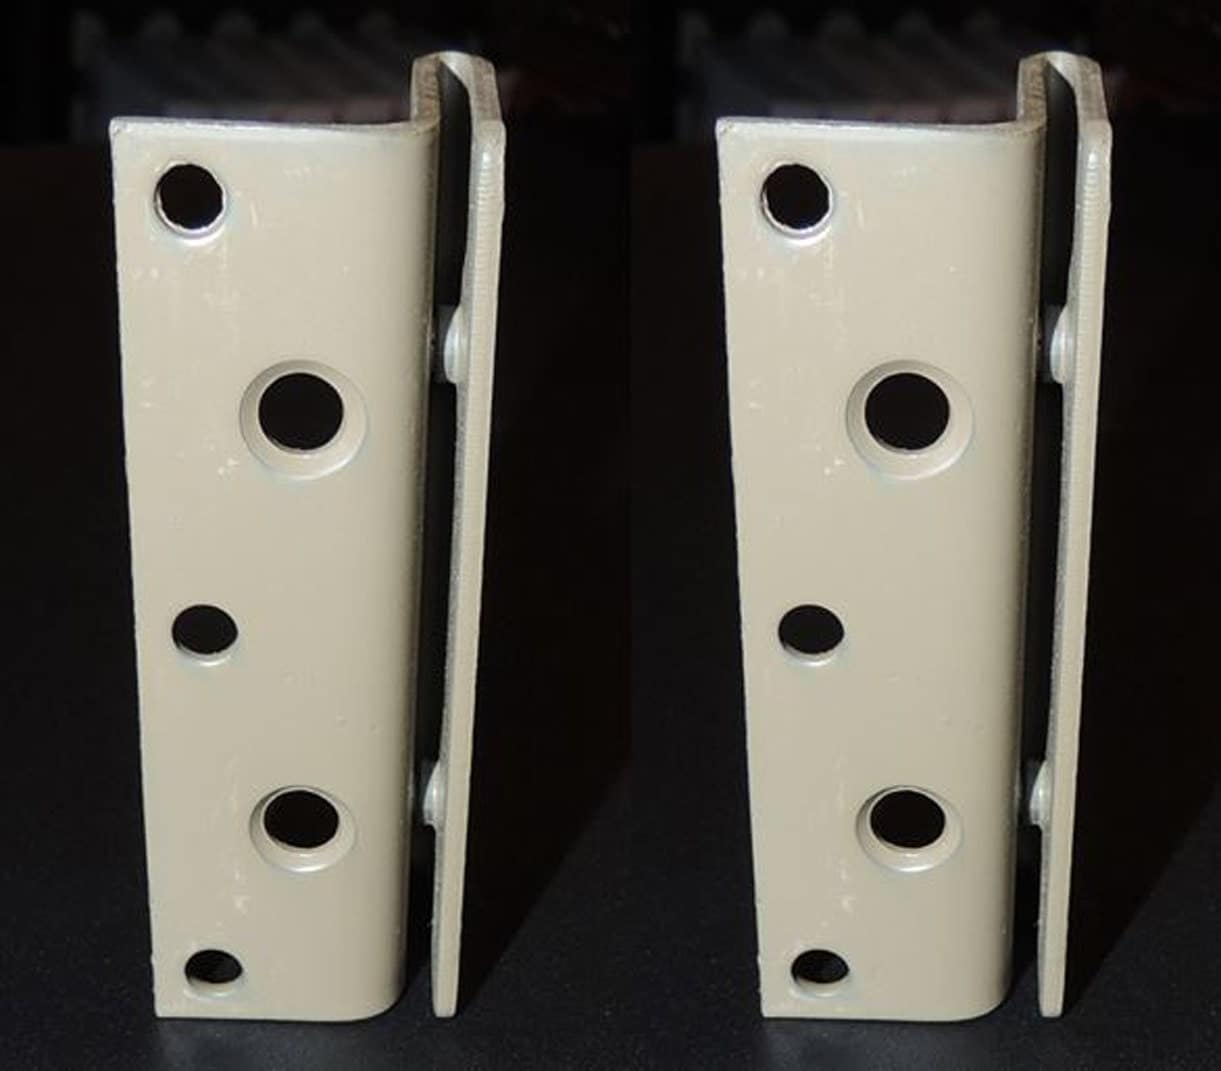 Bed frame to bed post double hook bracket set of 2 for Bed frame hangers